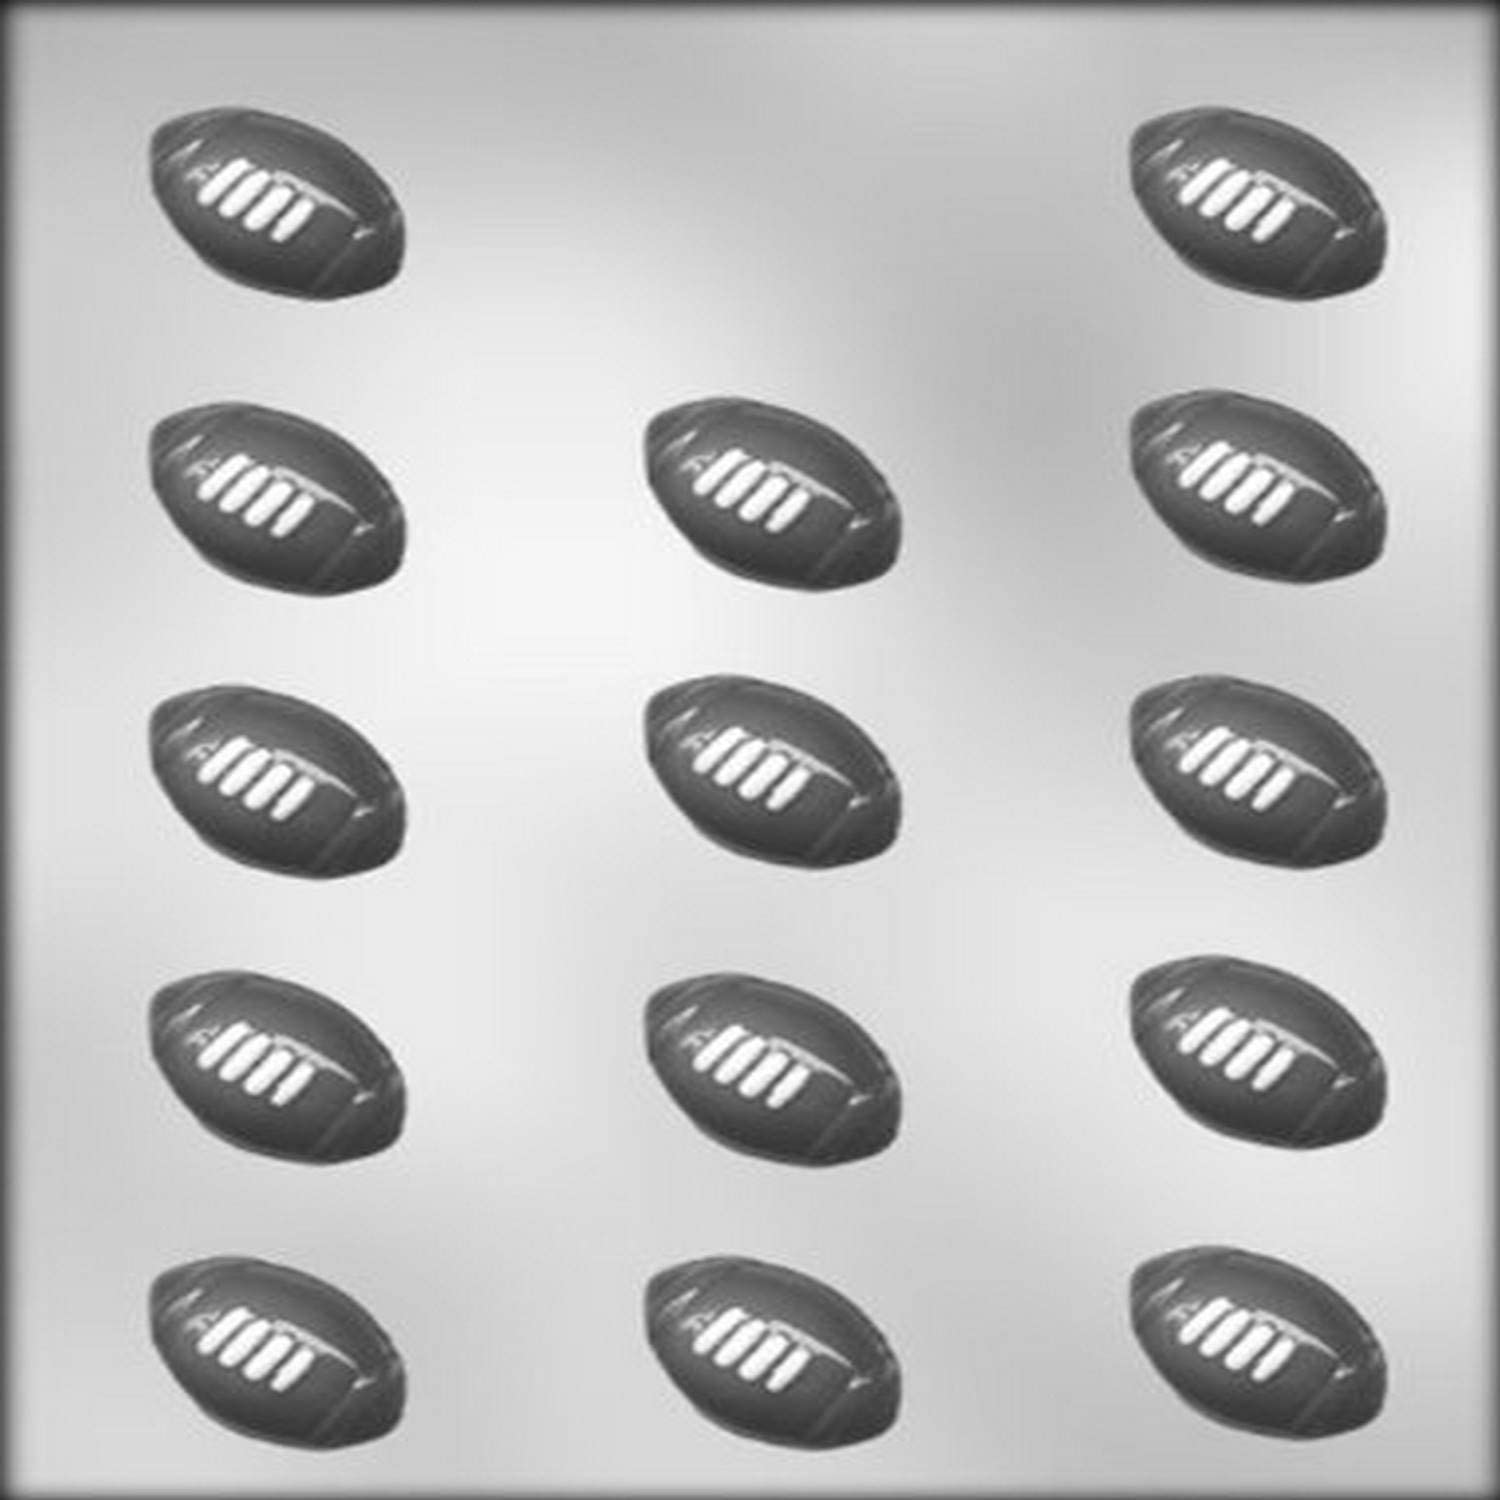 CK Products 1-1/2-Inch Football Chocolate Mold